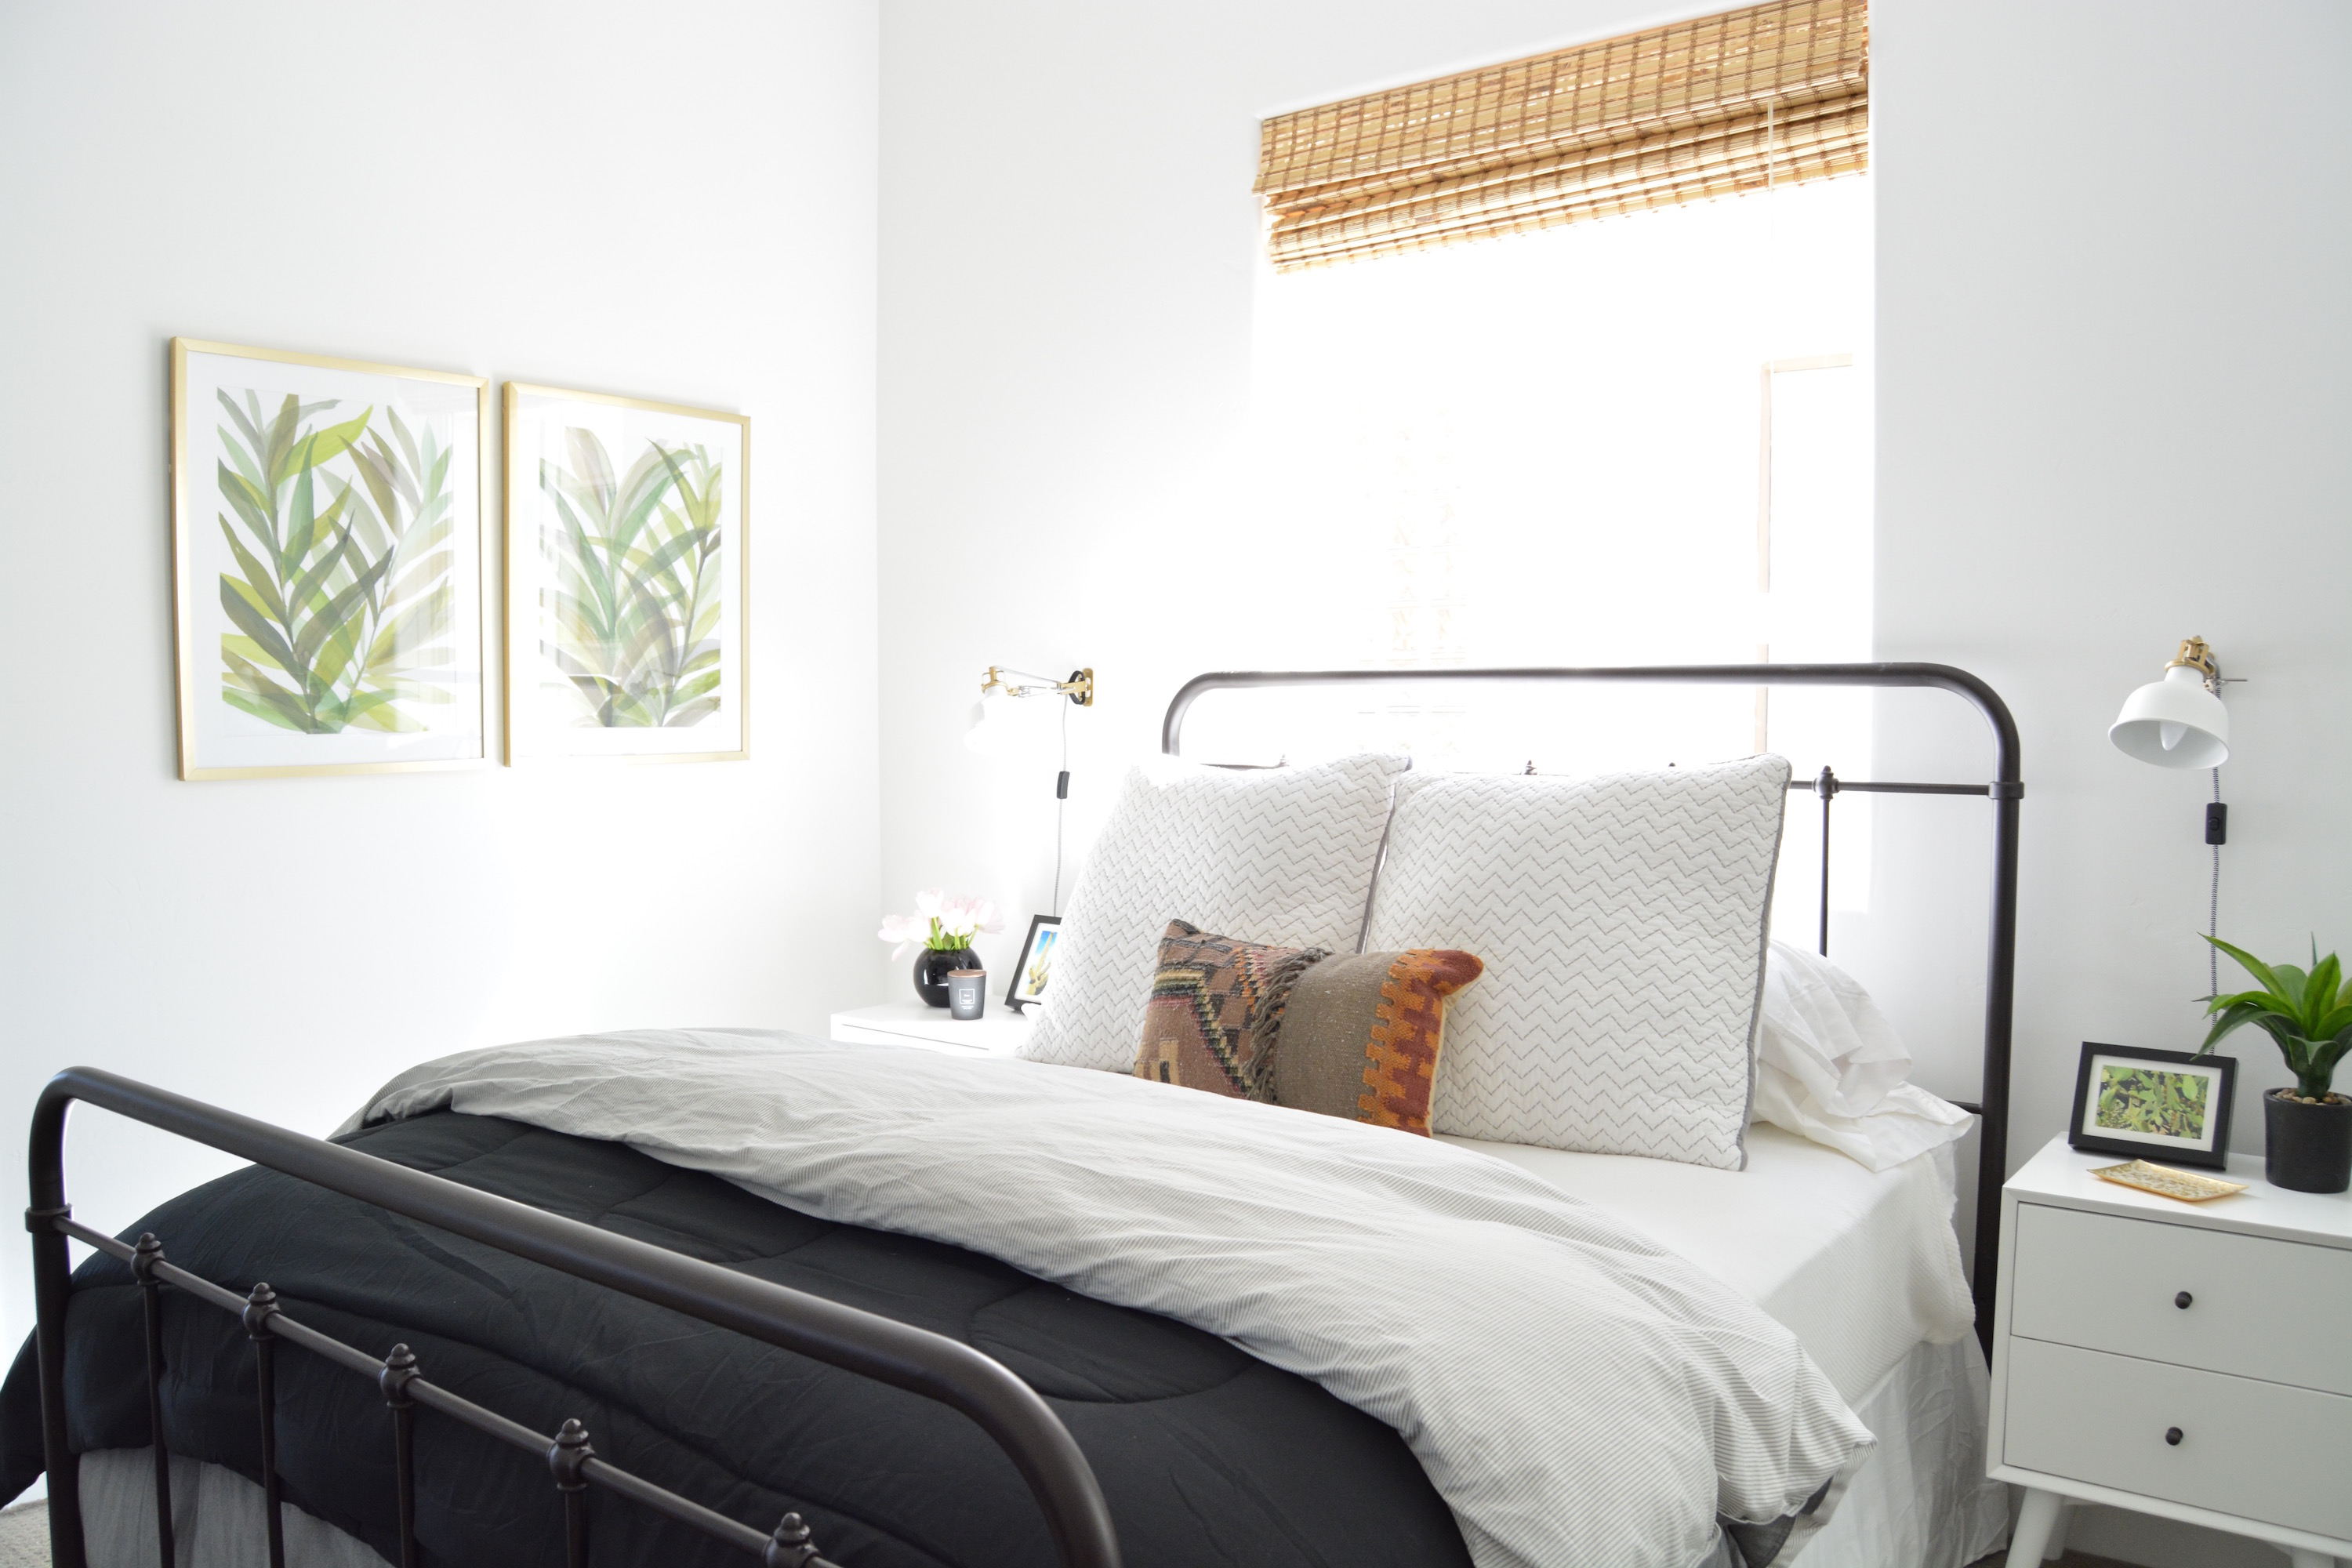 20 Minimalist Bedroom Ideas How To Use Minimalism In Bedroom Design Apartment Therapy